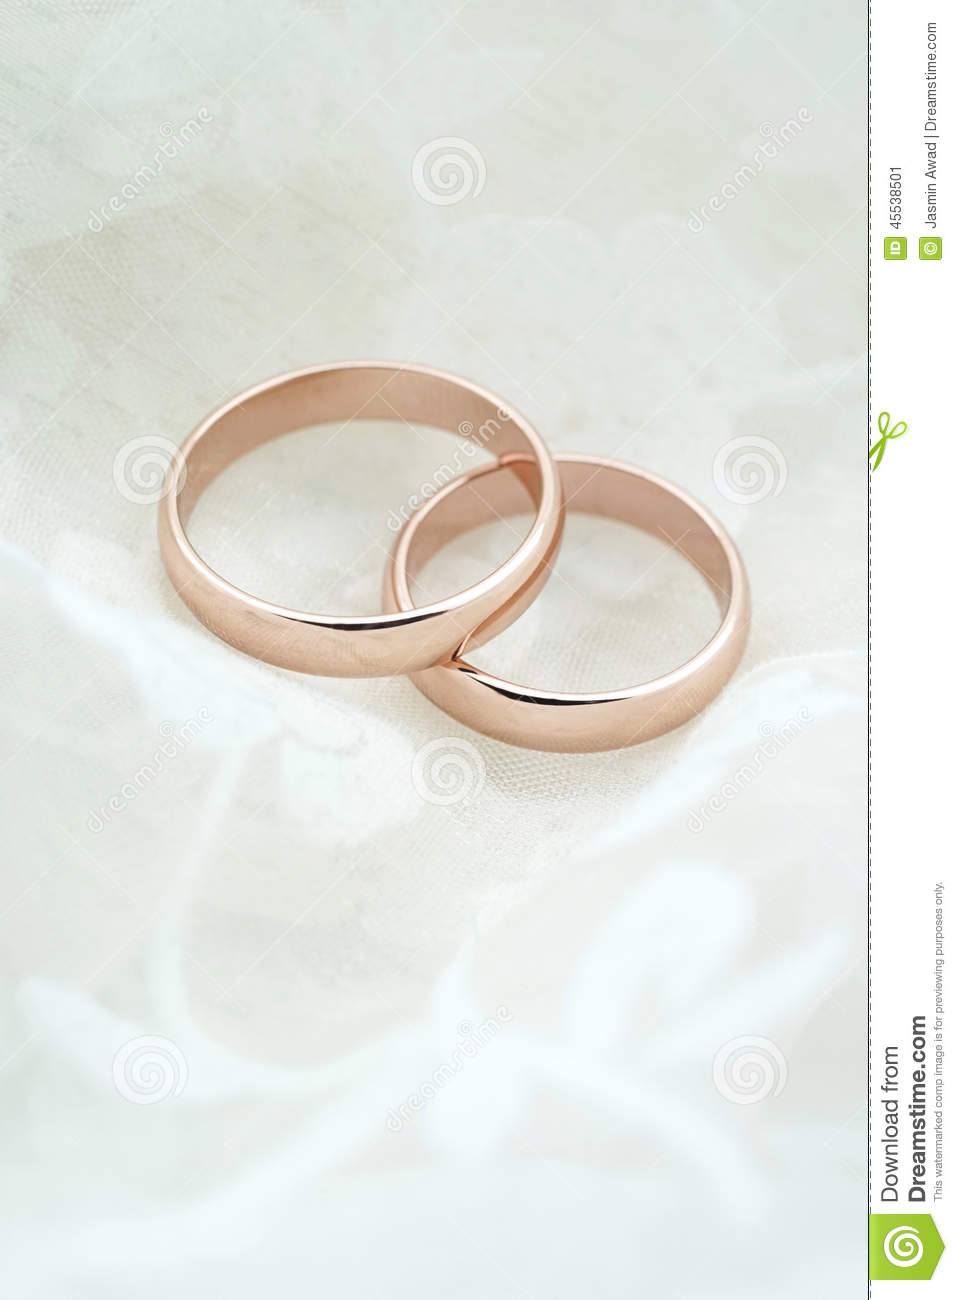 Wedding Invite With Rose Gold Rings Stock Photo  Image 45538501